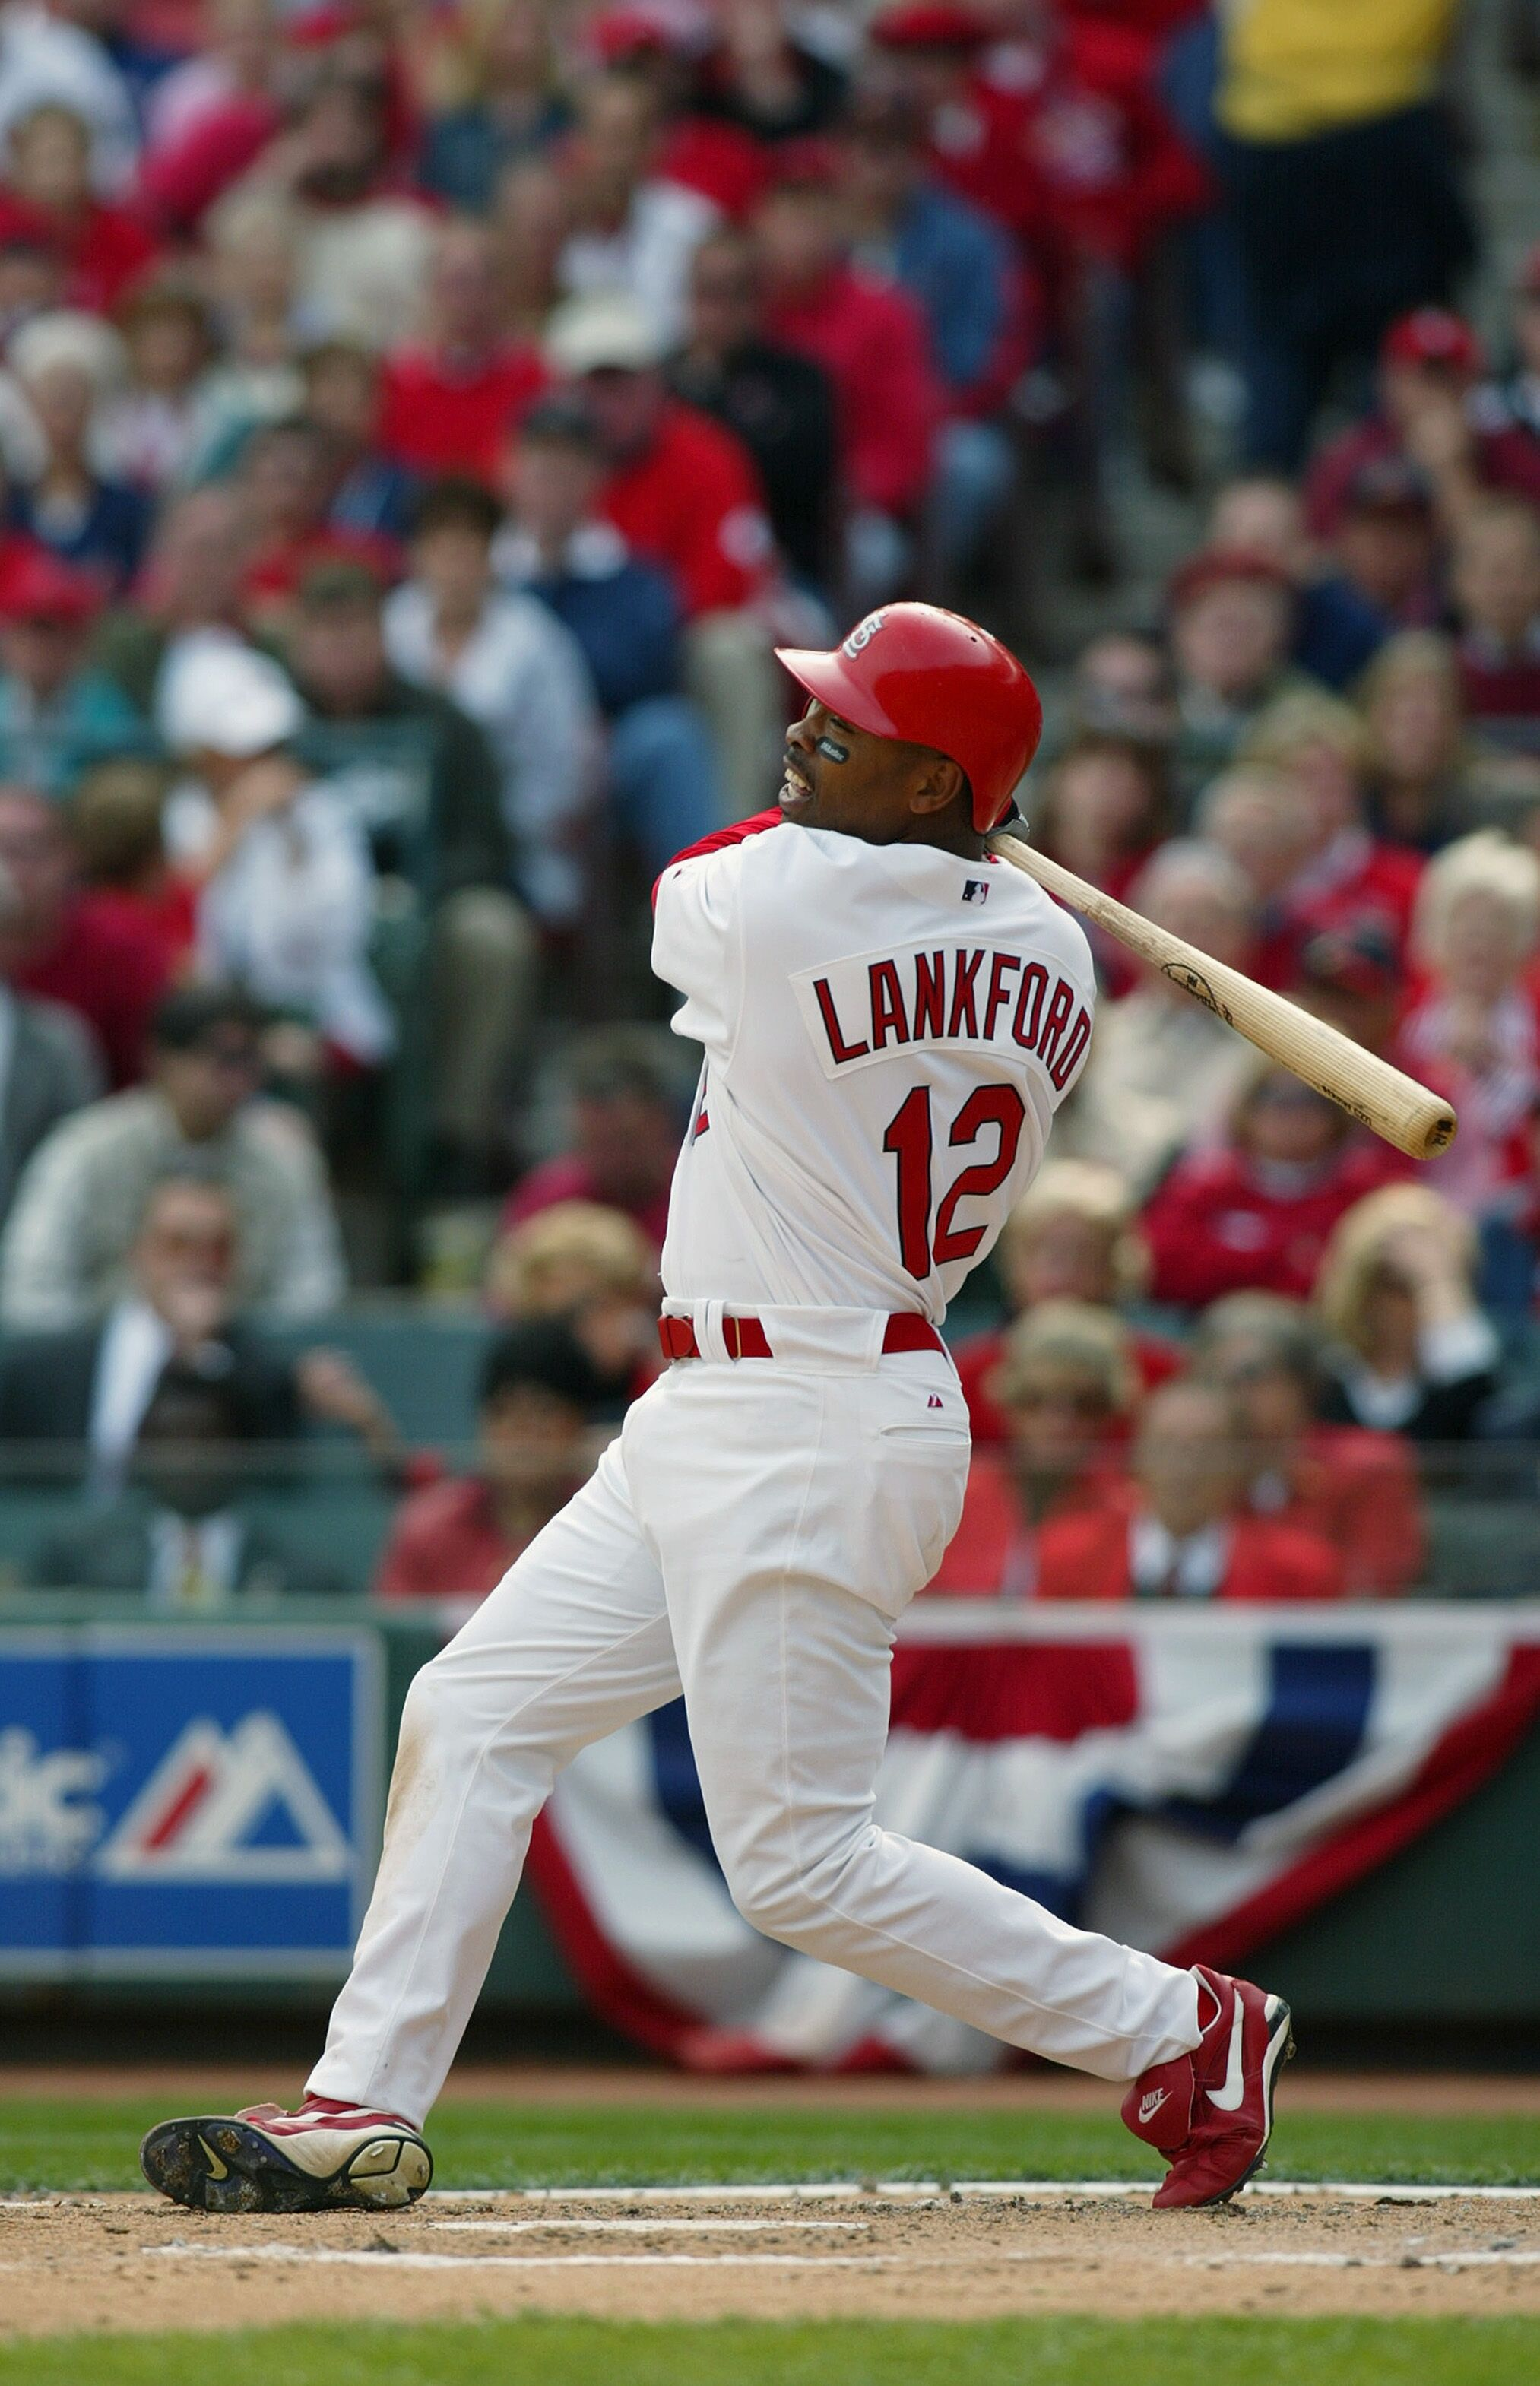 Brewers V Cardinals Jpg on Ray Lankford St Louis Cardinals